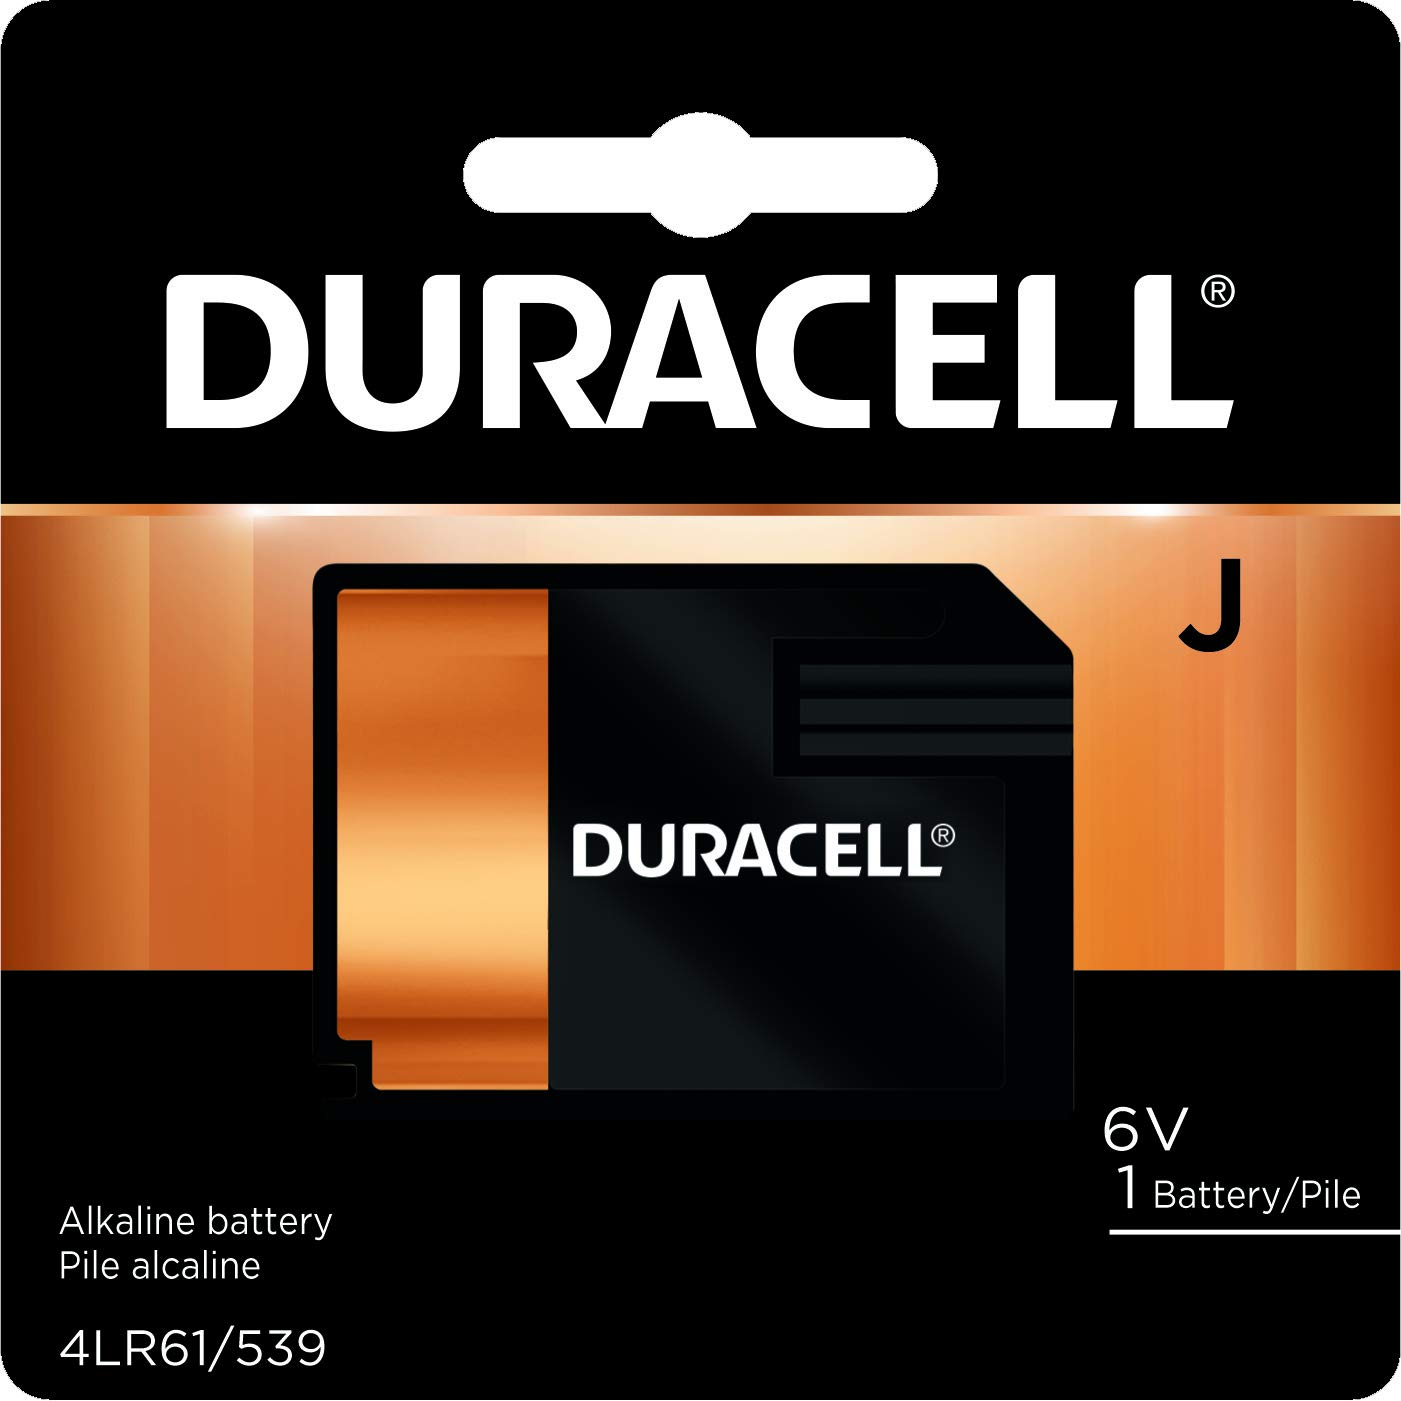 Duracell Battery Alkaline Size J 6V (Each)